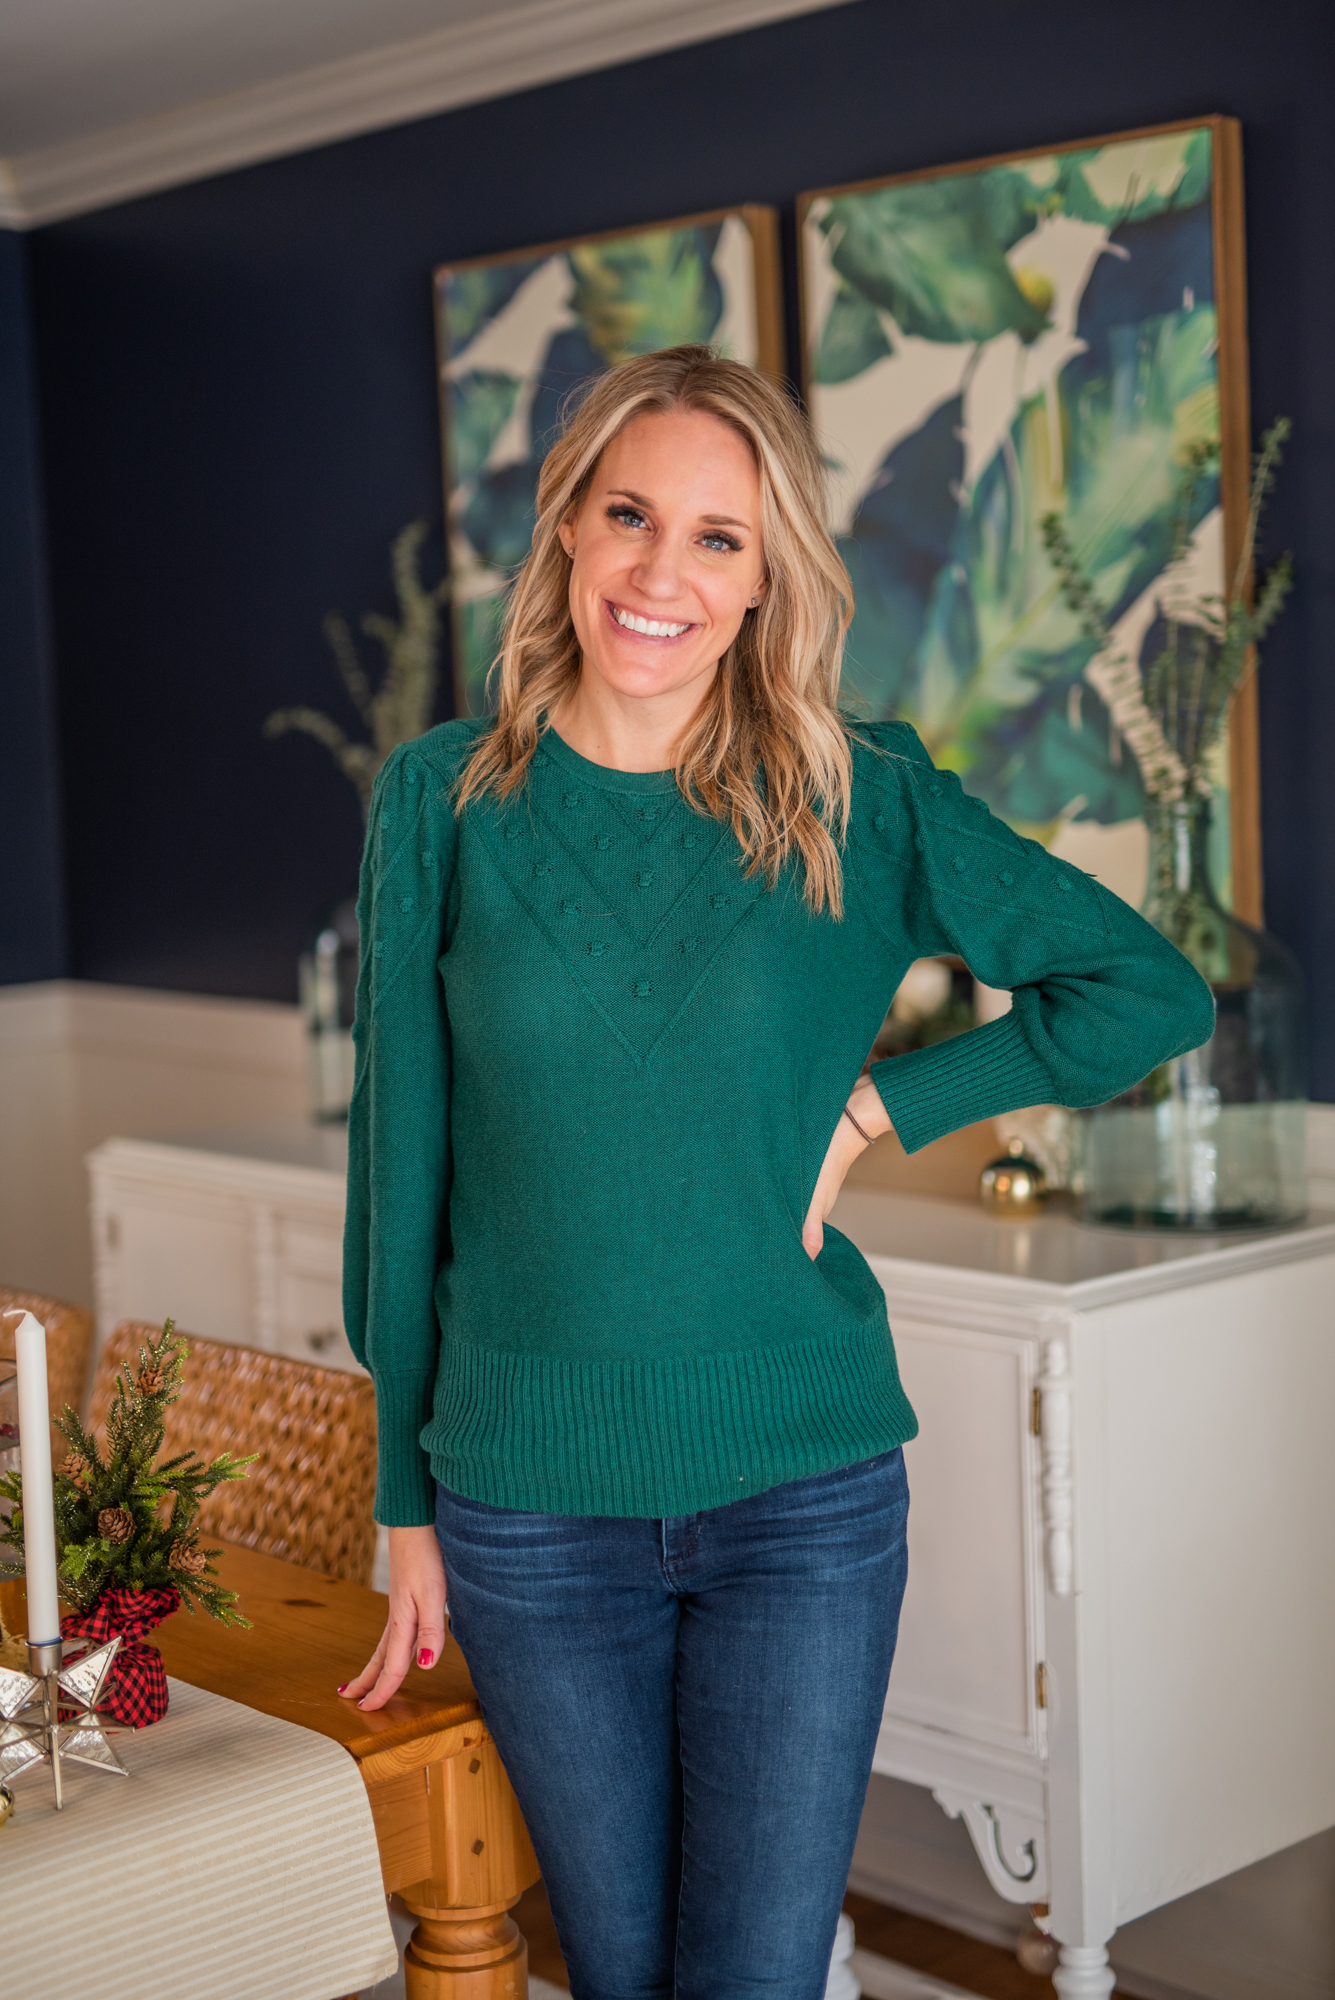 photo of woman in green sweater